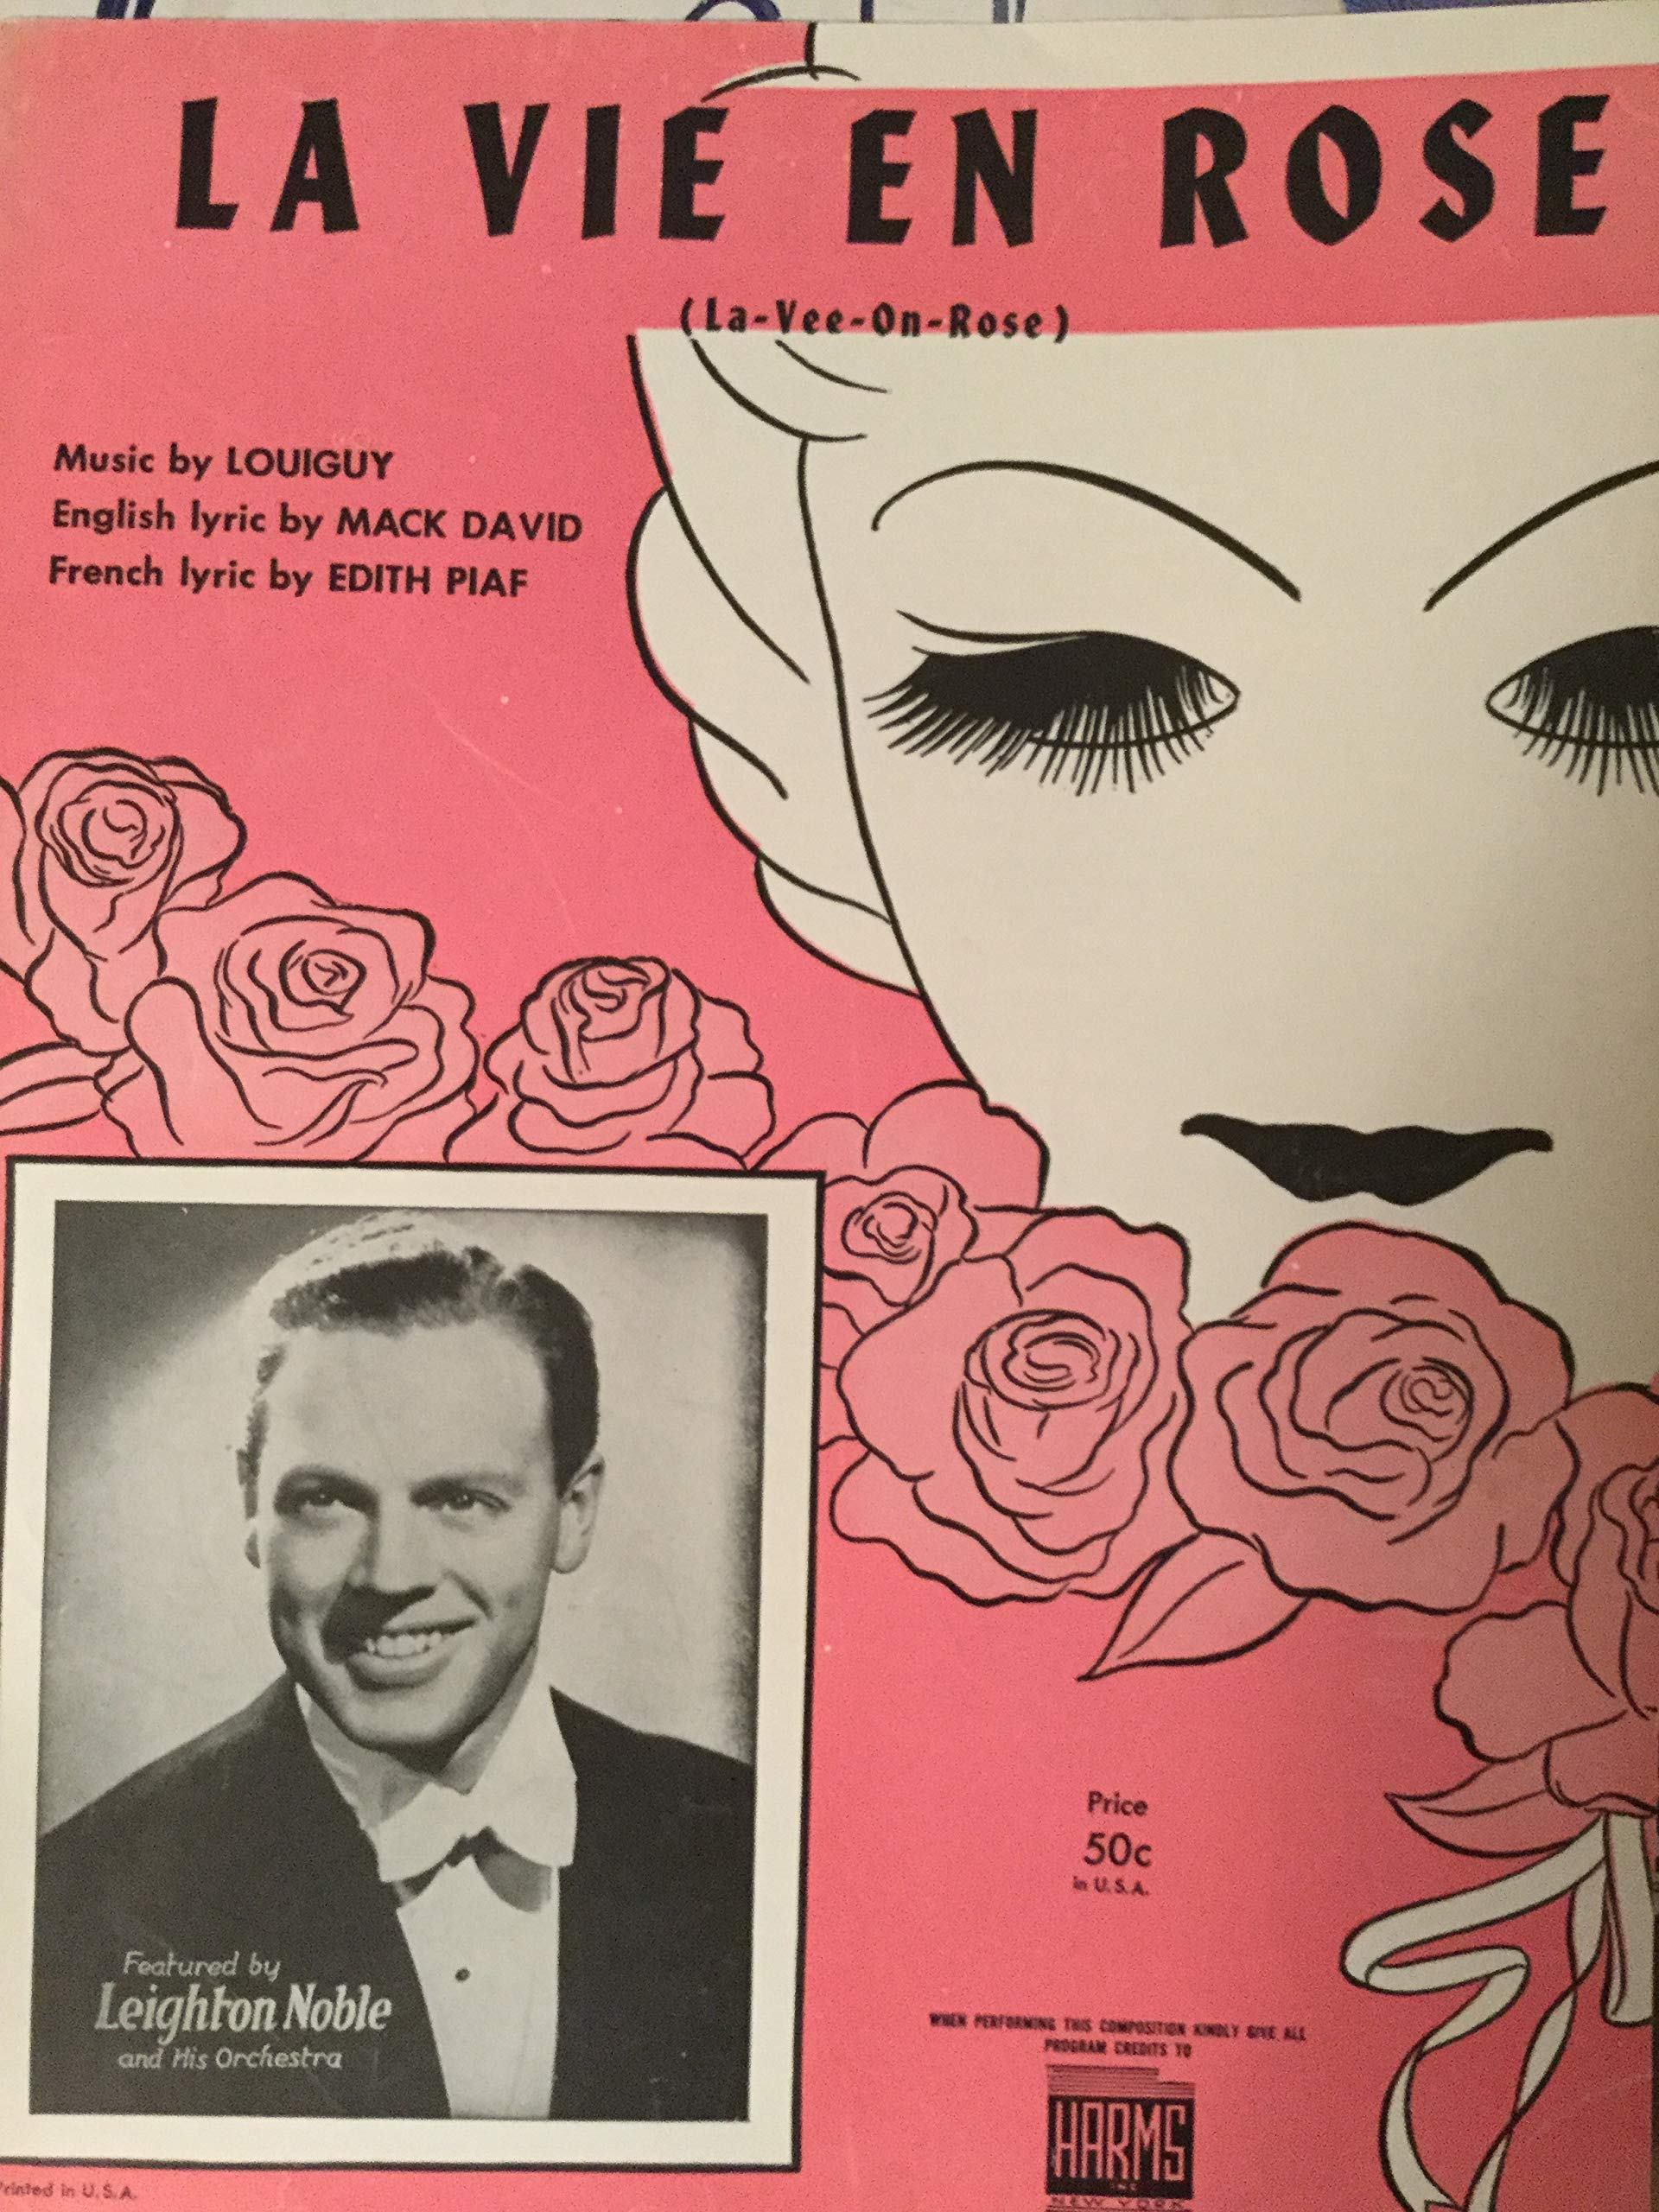 La Vie En Rose (La-Vee-On-Rose) (Vintage sheet music) Cover has artwork and  small photo of Leighton Noble.: Music by Louiguy, English lyrics by Mack  David, French lyrics by Edith Piaf: Amazon.com: Books